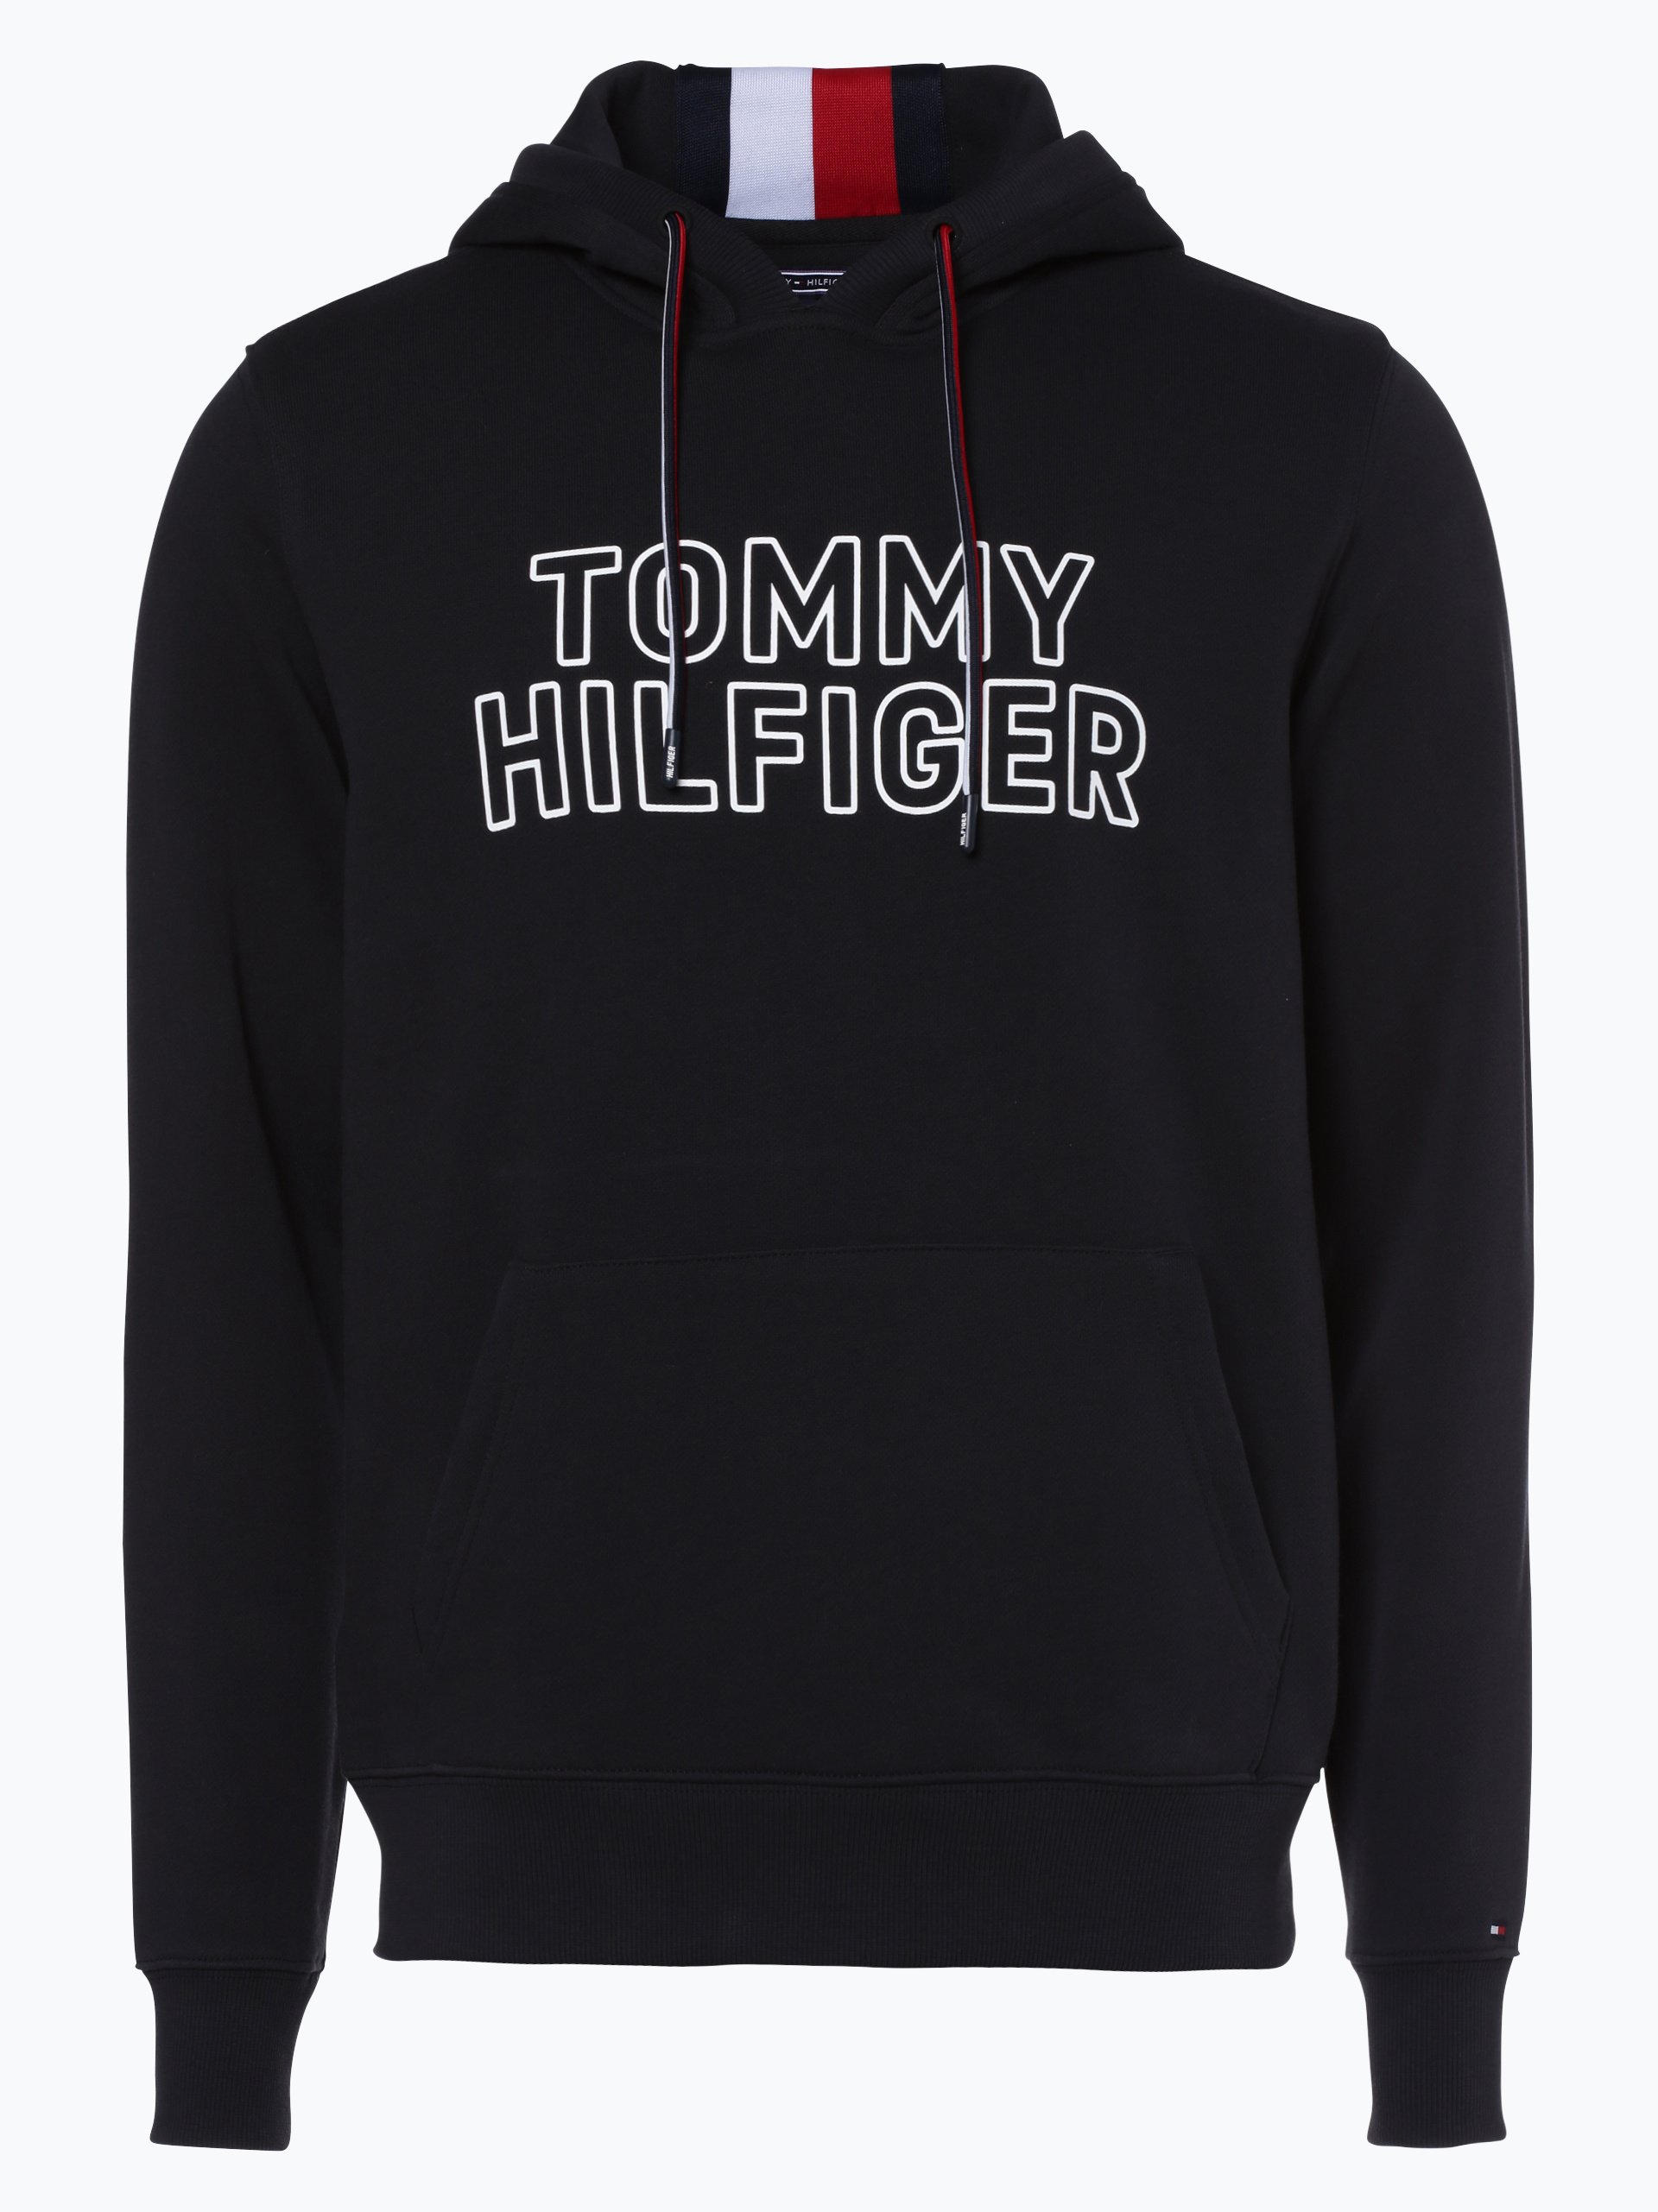 tommy hilfiger herren sweatshirt schwarz bedruckt online kaufen peek und cloppenburg de. Black Bedroom Furniture Sets. Home Design Ideas